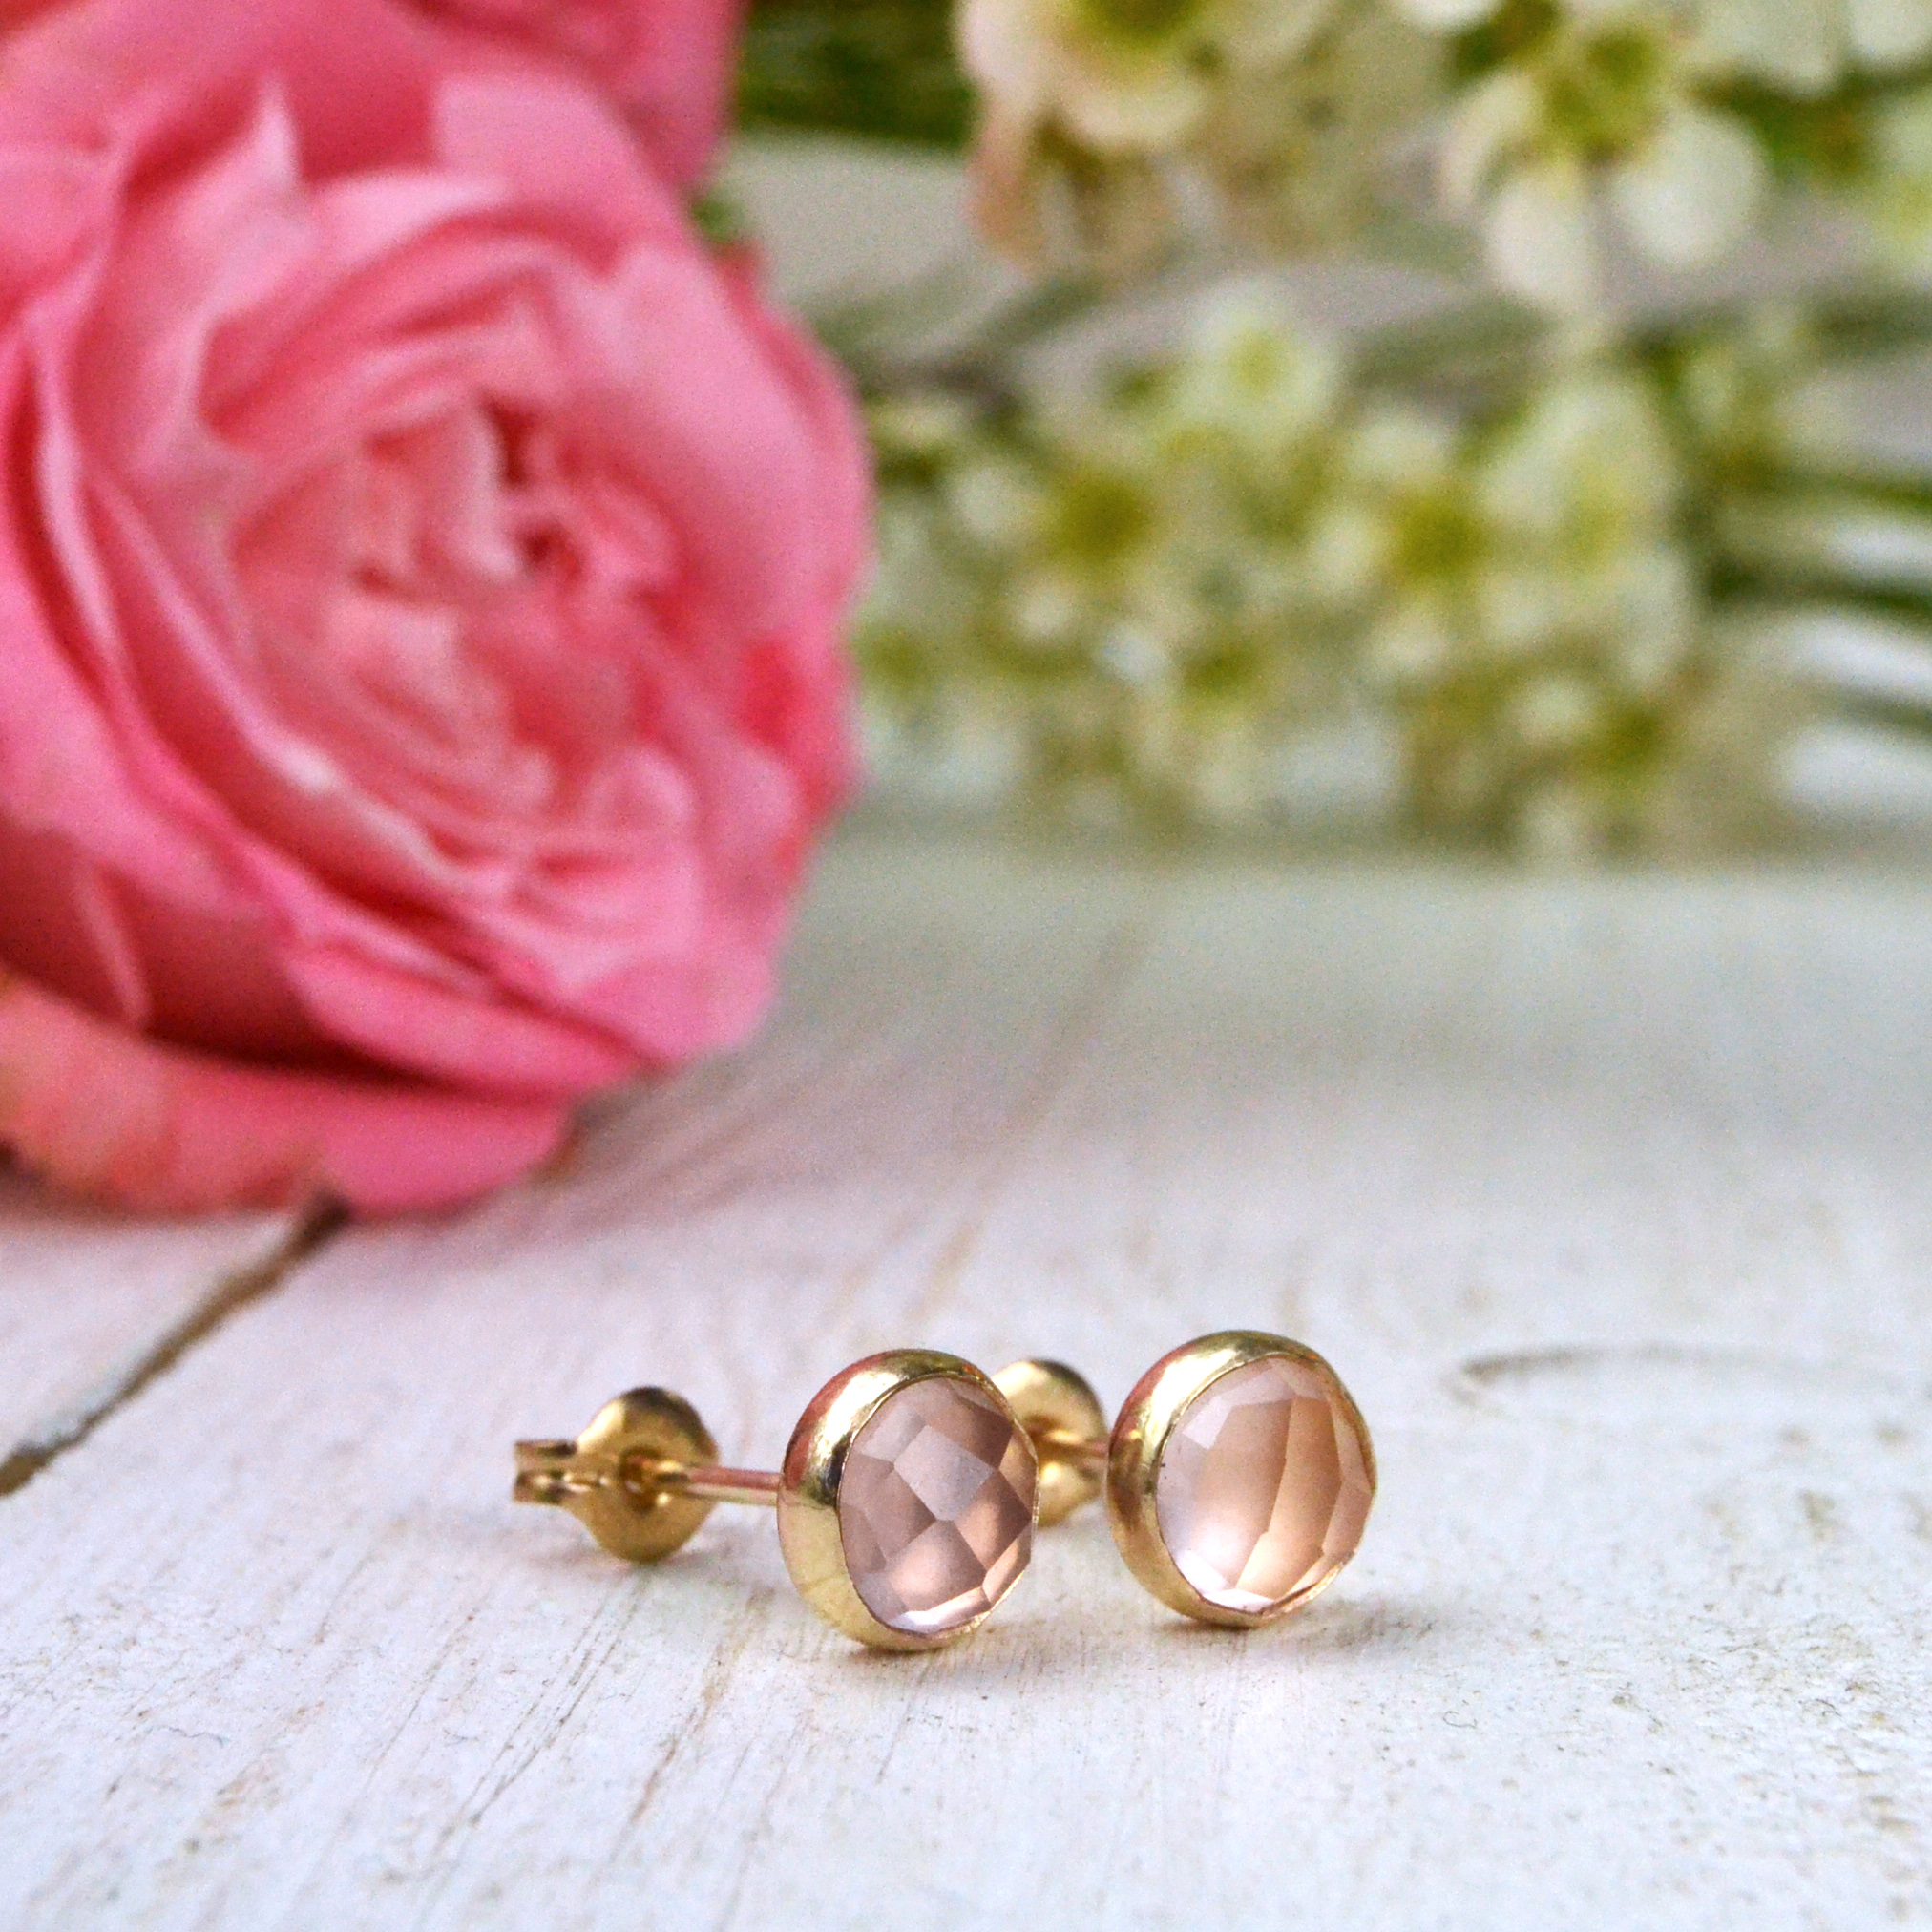 Rose quartz earrings in gold.  Honestly I didn't know these exsisted until today, but I have fallen in love with them.